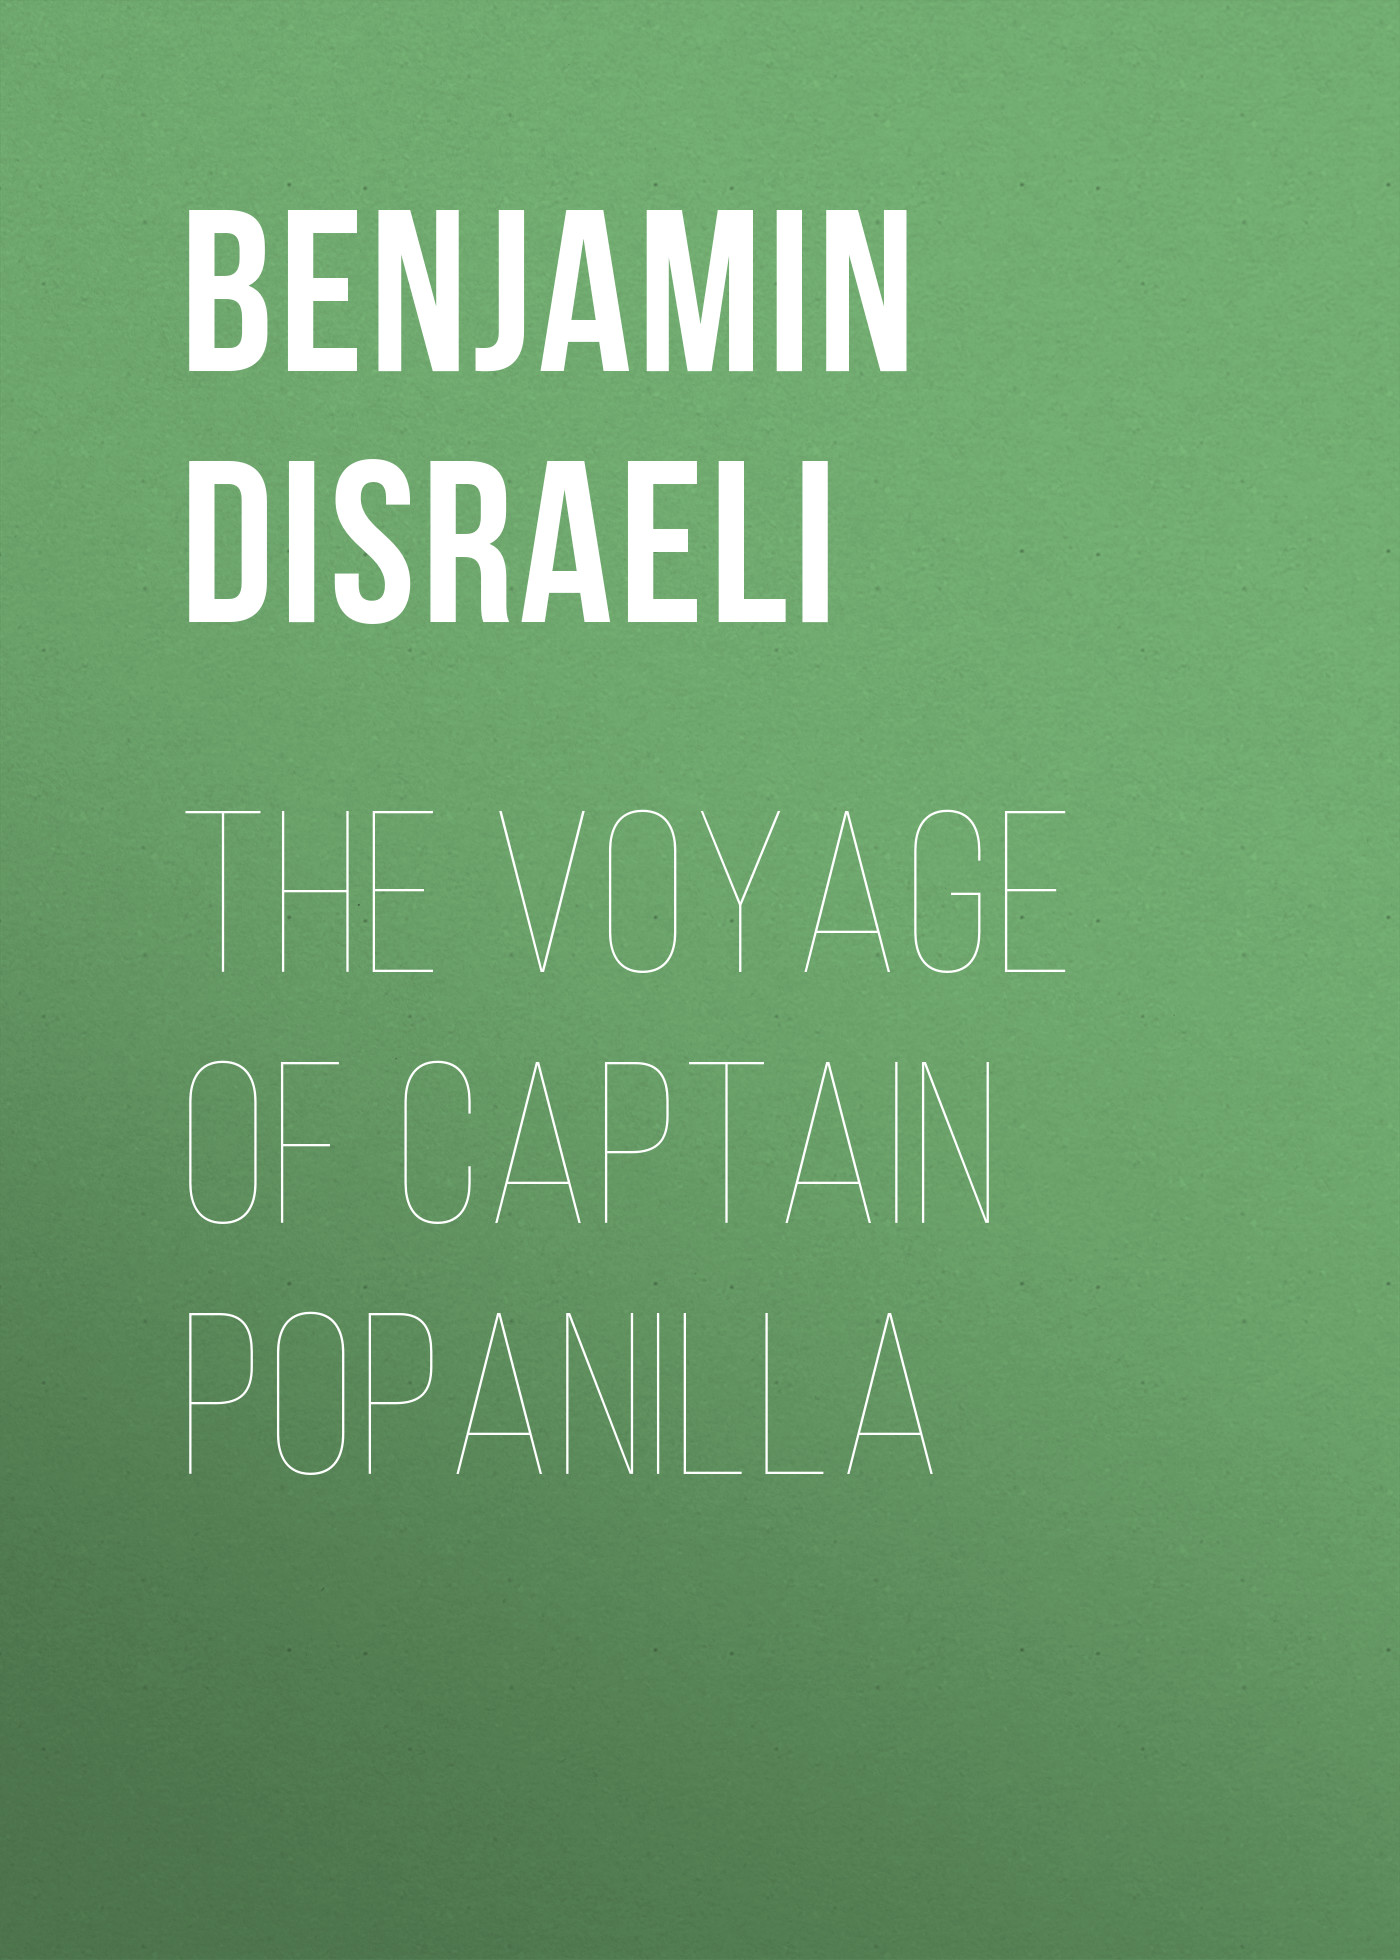 Benjamin Disraeli The Voyage of Captain Popanilla